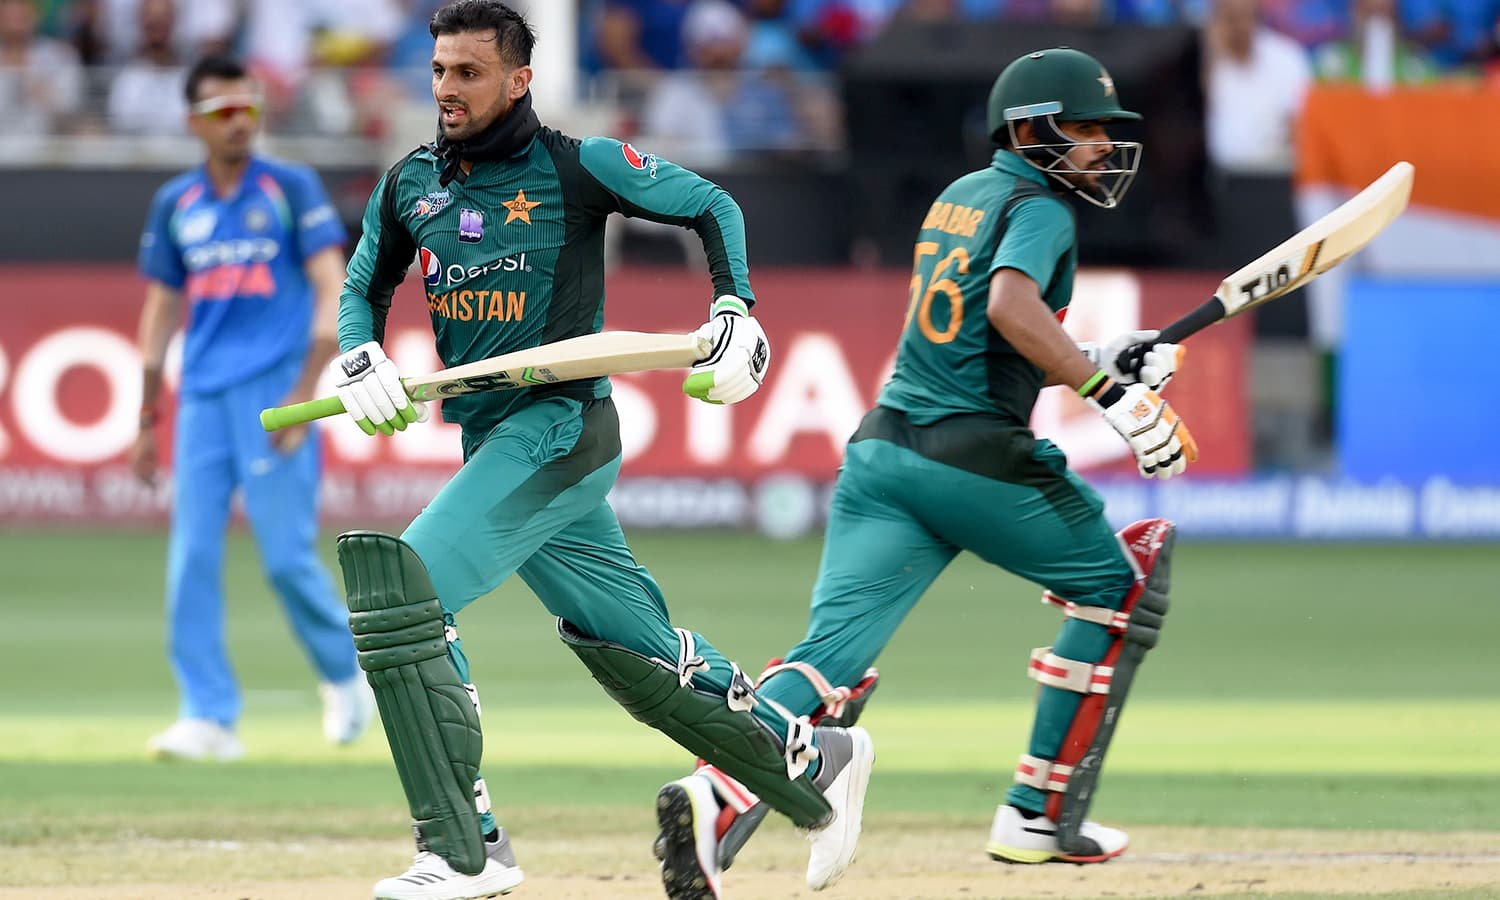 Pakistan batsman Shoaib Malik (L) and Babar Azam run between the wickets. — AFP